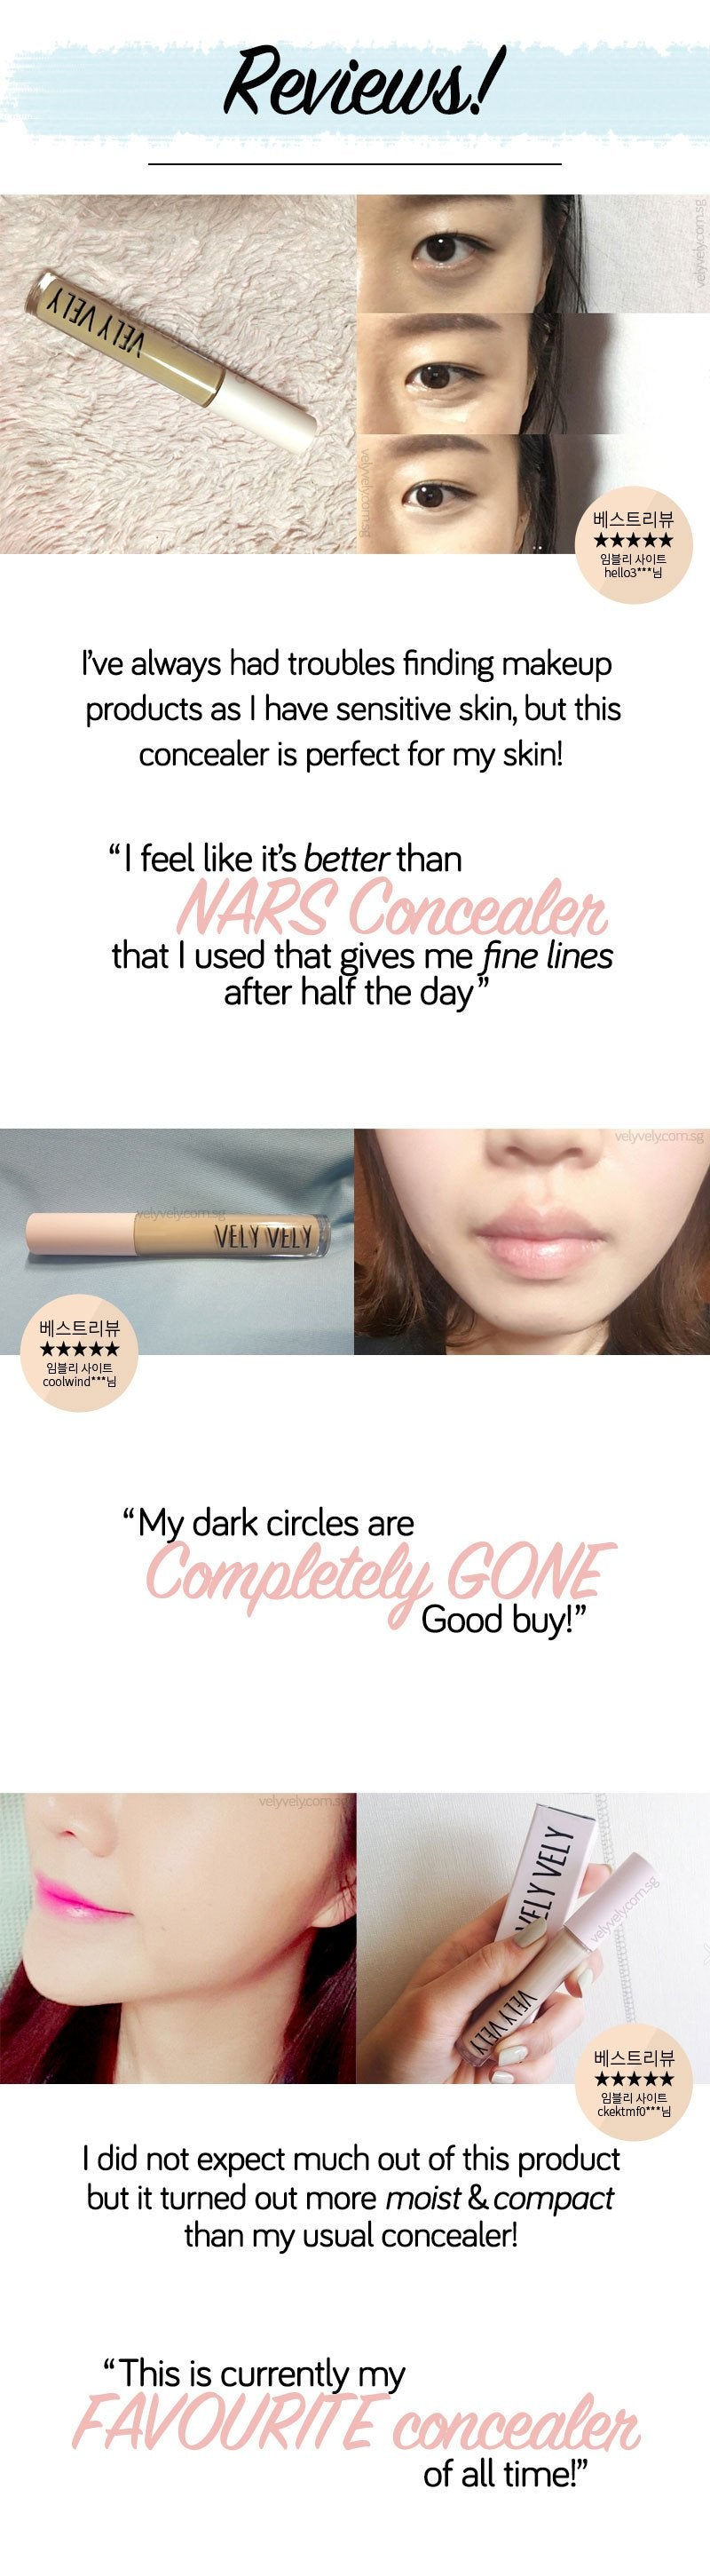 Check out IM Custom Flawless Concealer's reviews!